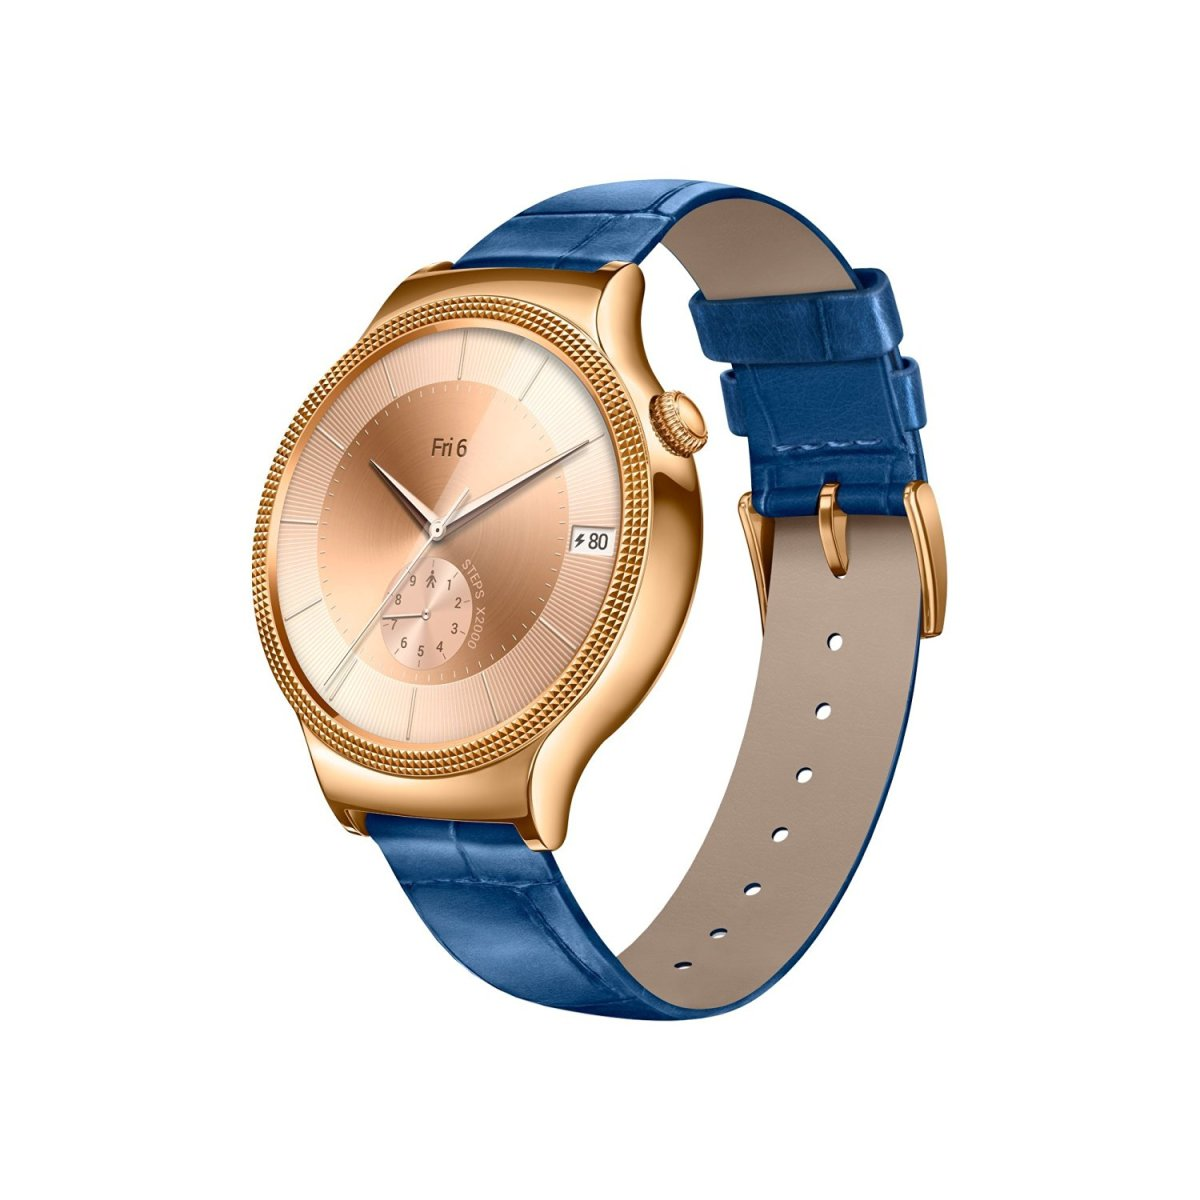 米Amazon.comで「Huawei Watch」が$100~280OFF、かなり安い